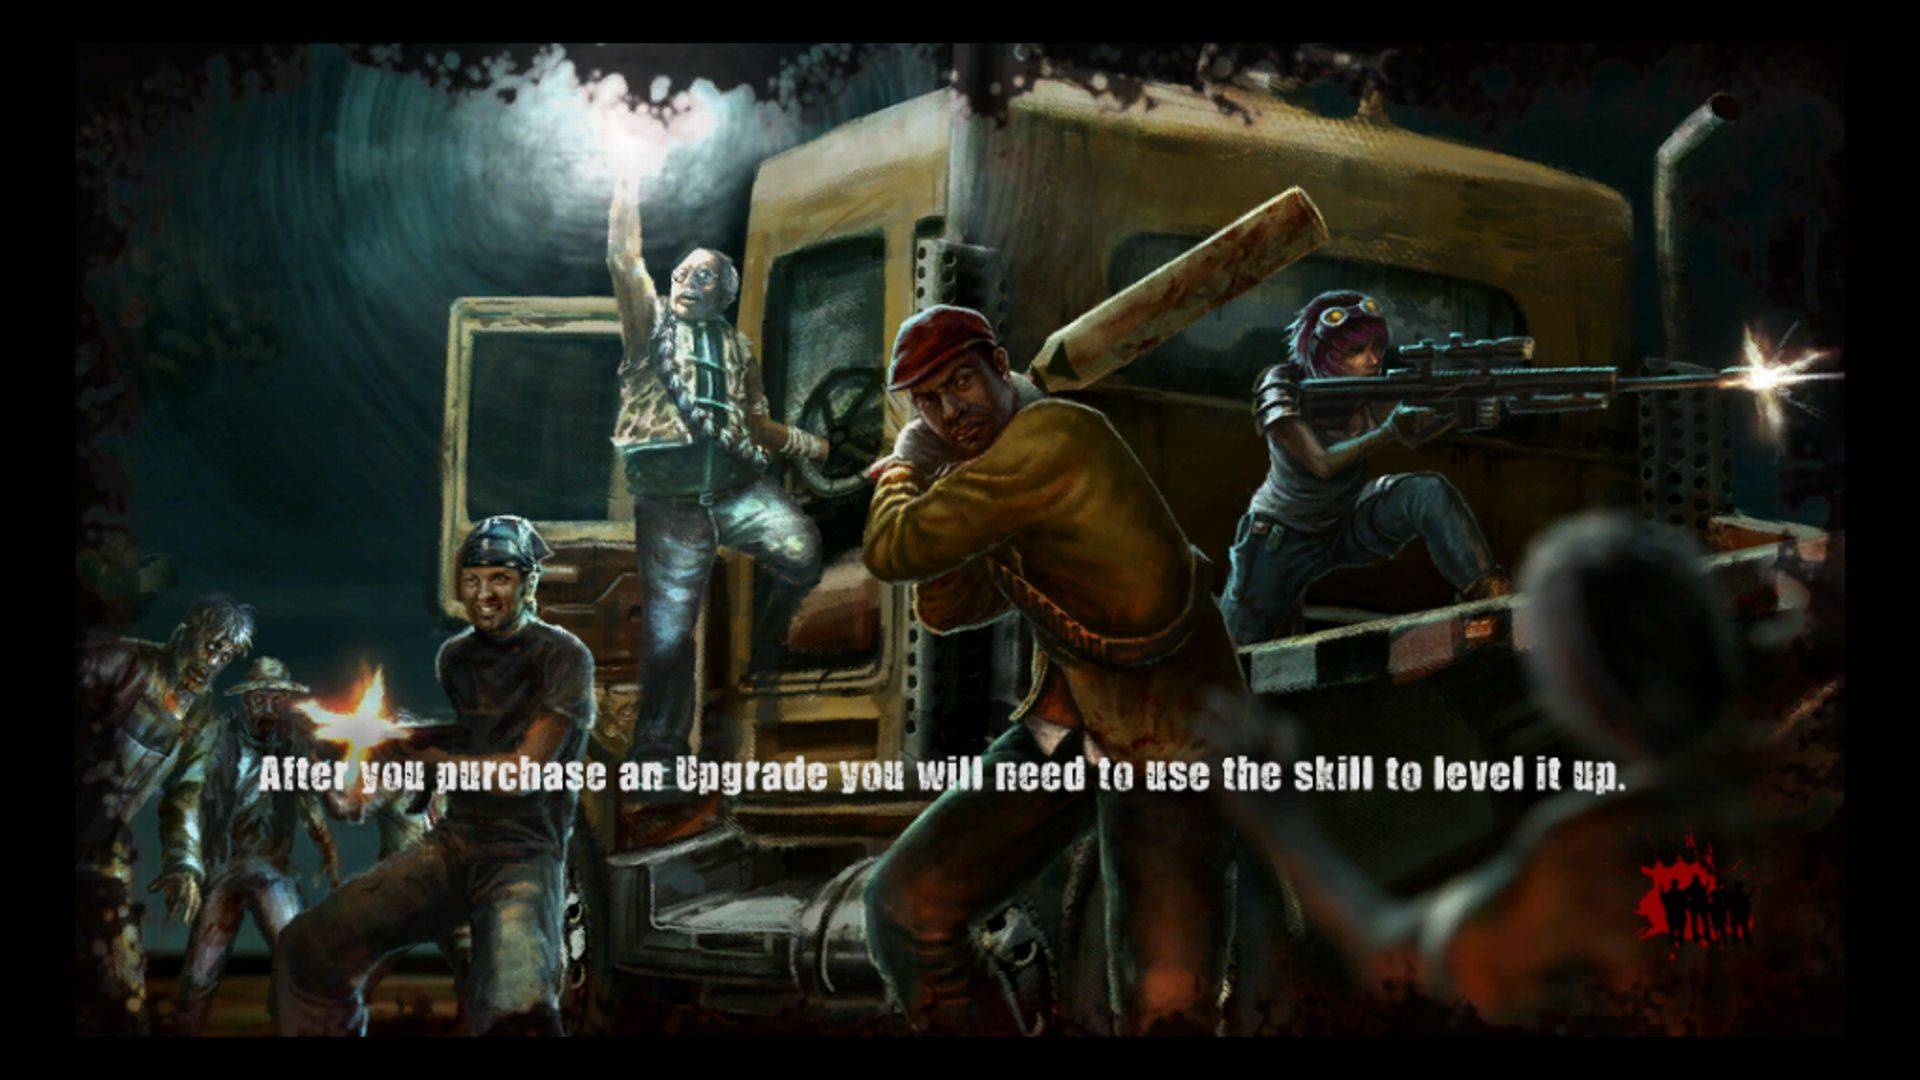 Zombie Apocalypse: Never Die Alone Screenshots, Pictures, Wallpapers –  PlayStation 3 – IGN